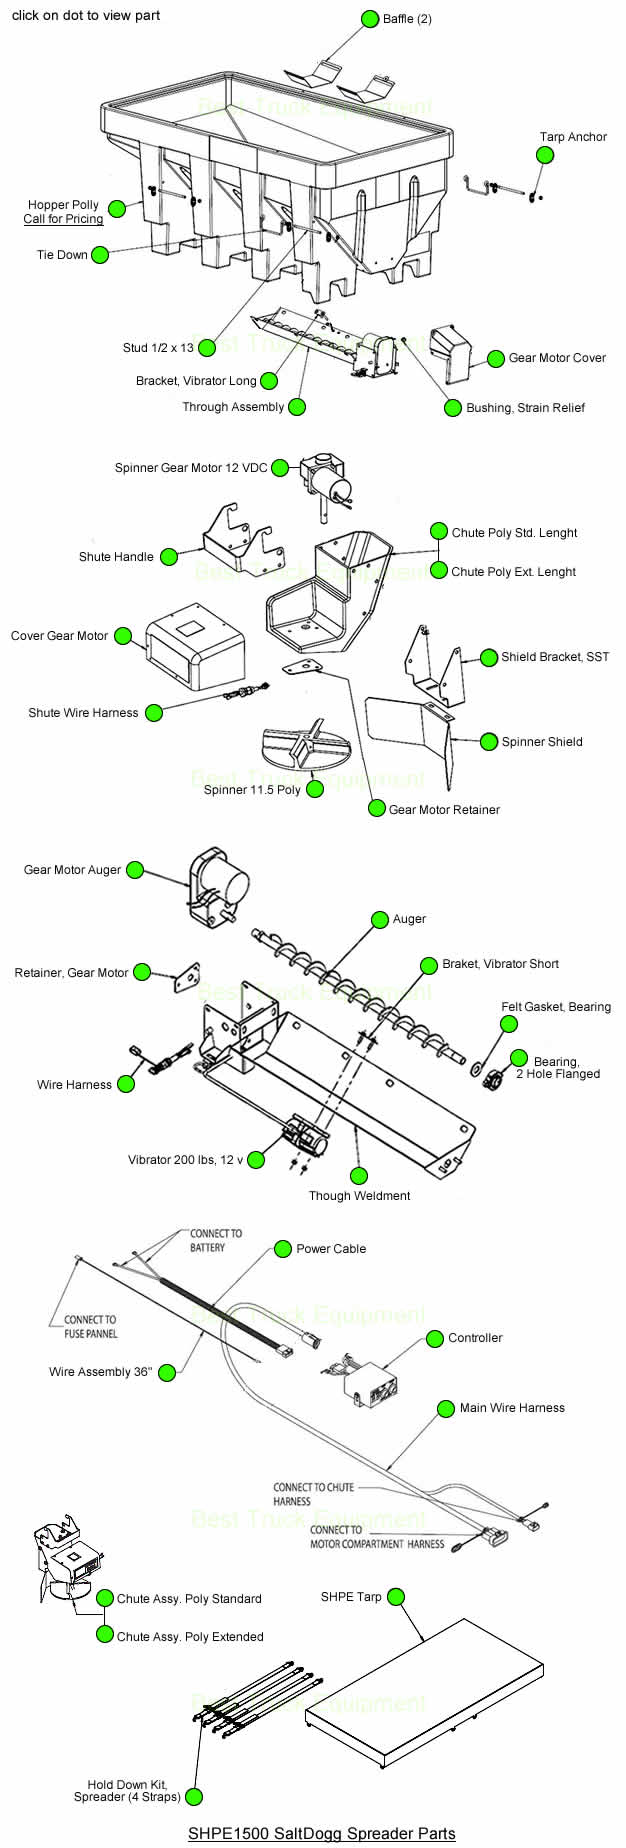 saltdogg shpe1500 buyers salt spreader parts look up diagram semi truck diagram views